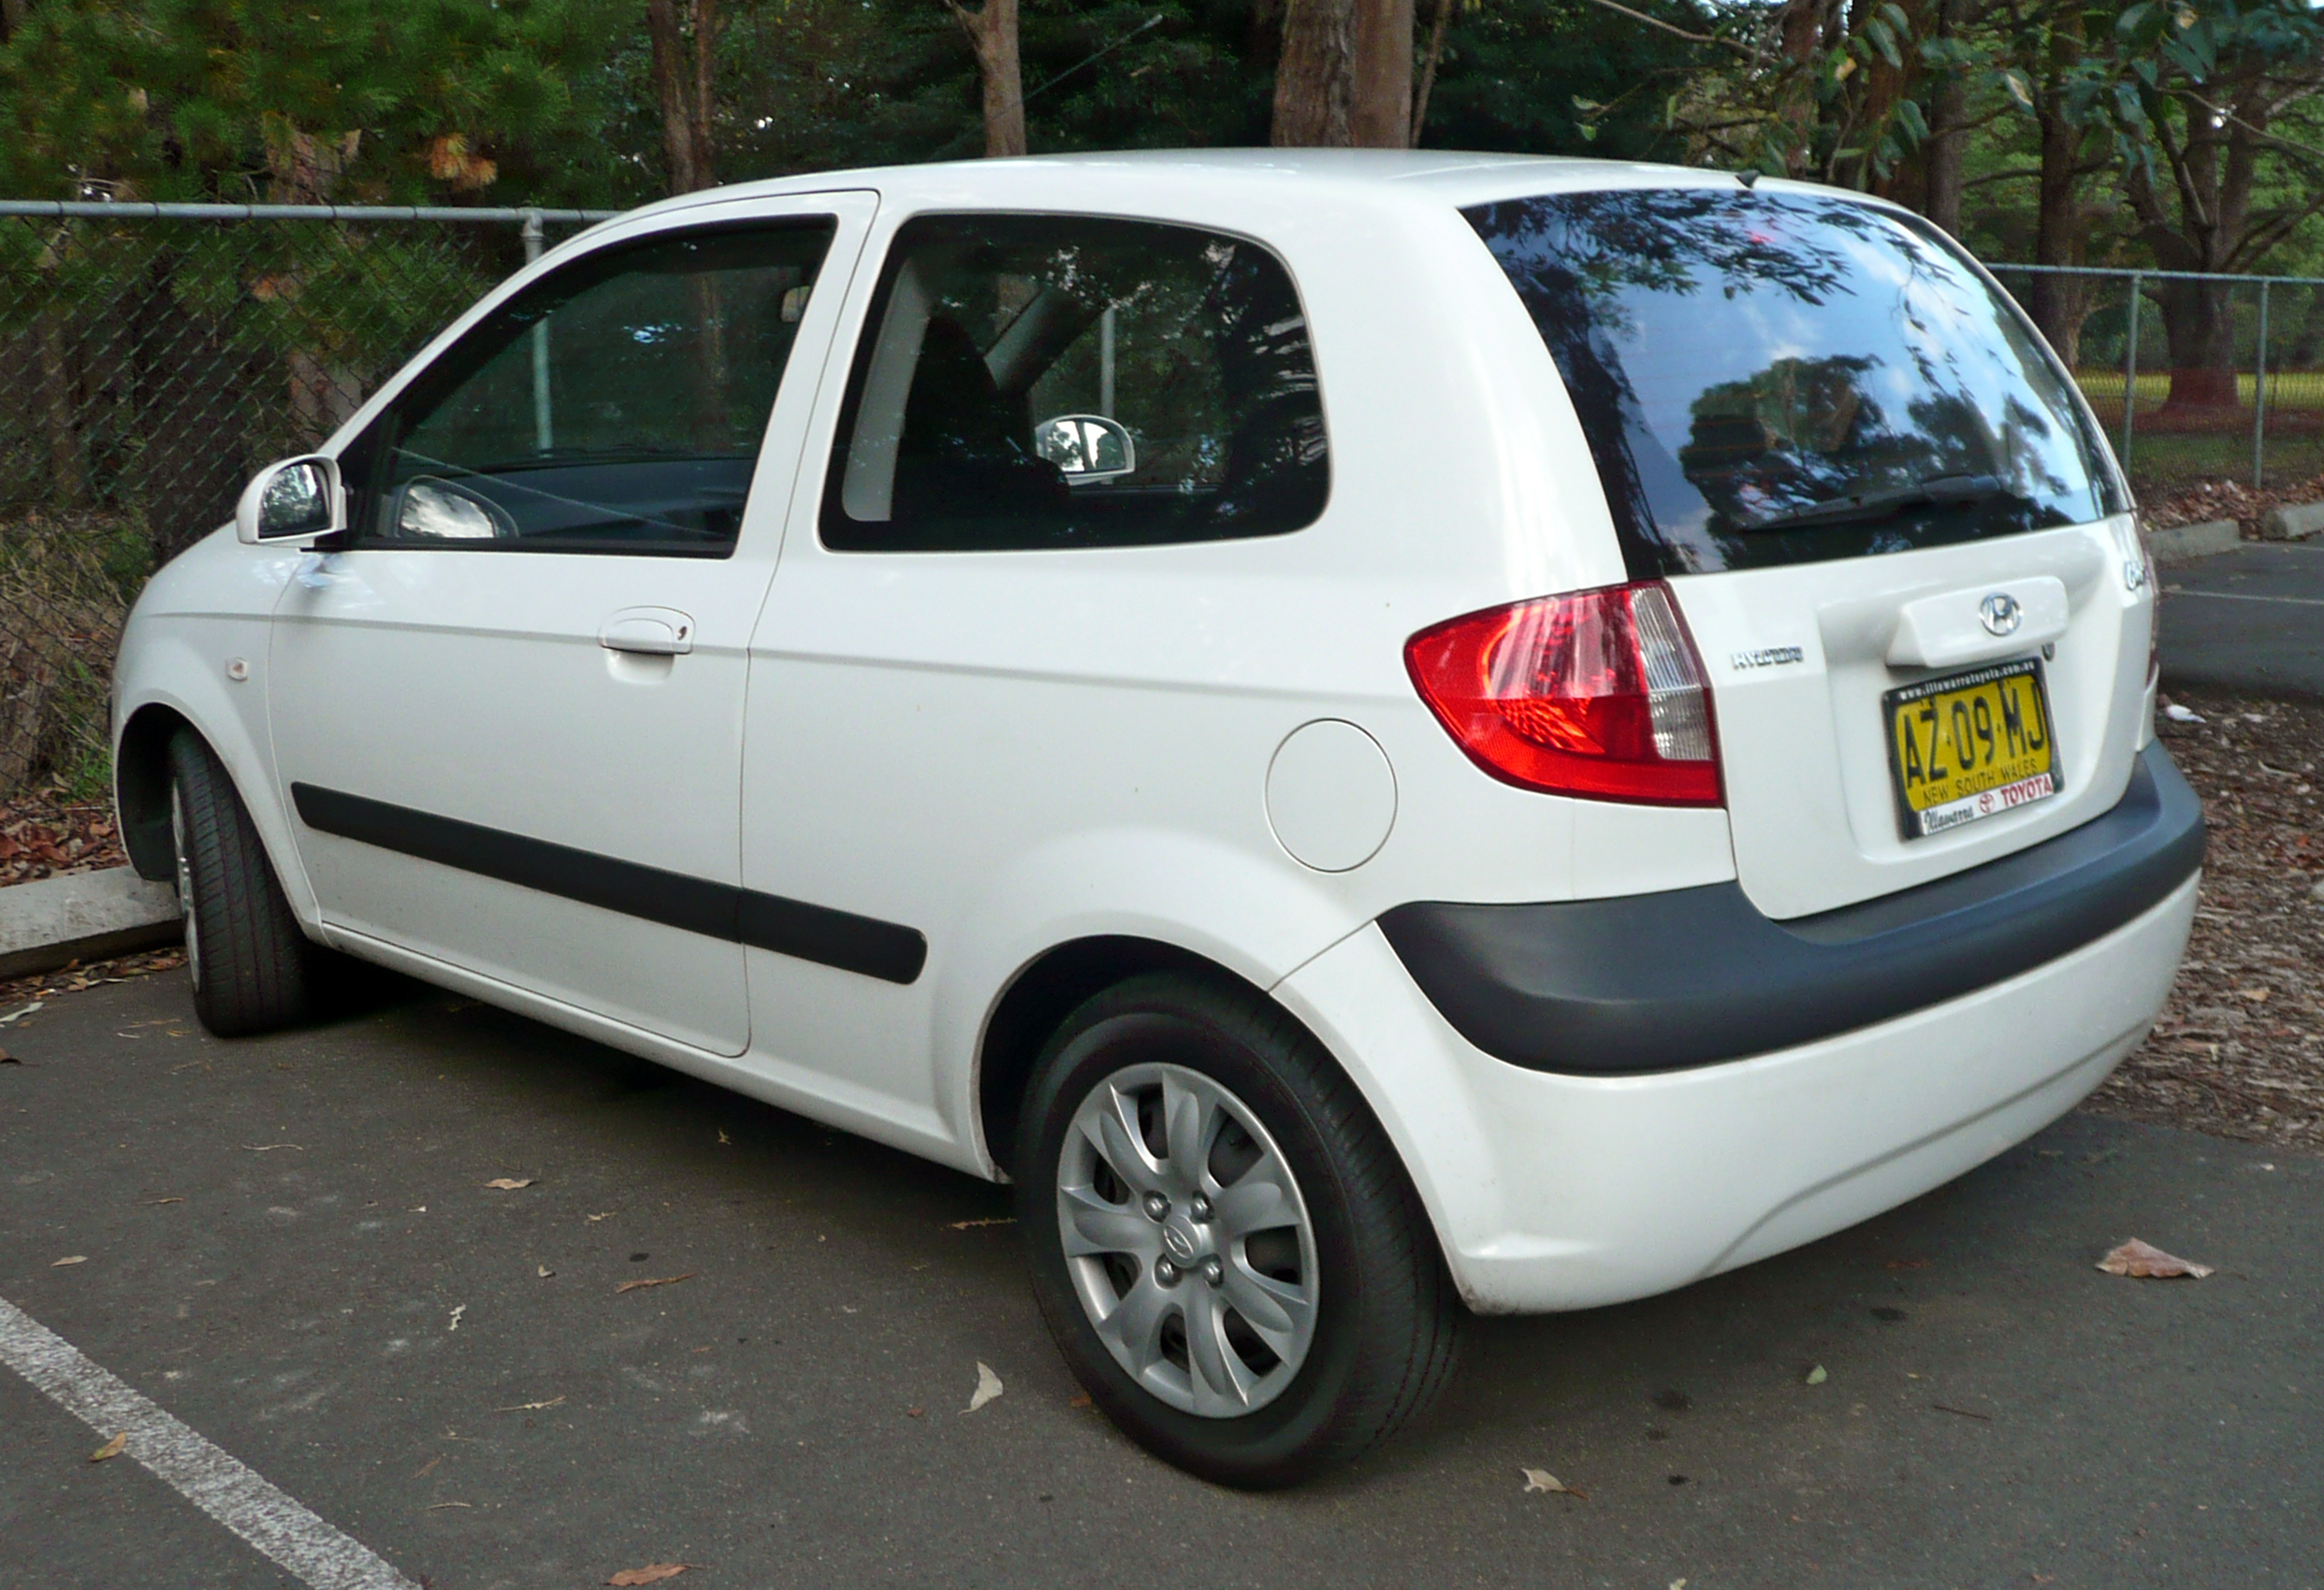 file 2007 hyundai getz tb my07 s 3 door hatchback 2010 05 04 jpg wikimedia commons. Black Bedroom Furniture Sets. Home Design Ideas